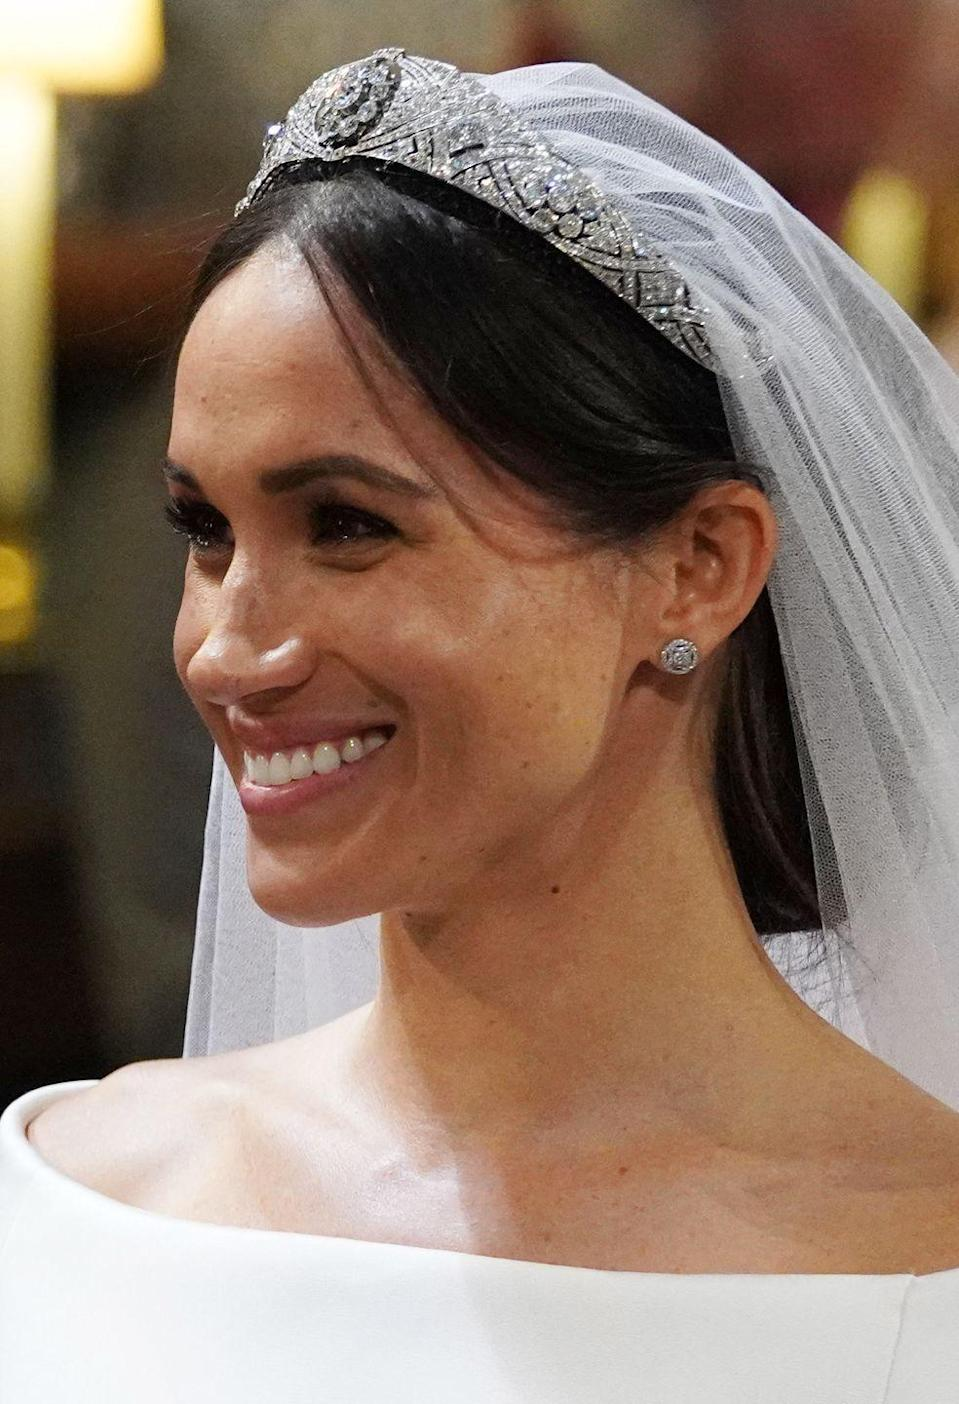 """<p>The <a href=""""https://www.goodhousekeeping.com/beauty/fashion/a19991637/meghan-markle-tiara-royal-wedding/"""" rel=""""nofollow noopener"""" target=""""_blank"""" data-ylk=""""slk:platinum piece"""" class=""""link rapid-noclick-resp"""">platinum piece</a> also belonging to Queen Elizabeth II dates back to 1932, but the circa-1893 center brooch is even older. Eleven sections make up the flexible band, and it's pierced with interlaced ovals and pavé set with large and small brilliant diamonds. The center, detachable brooch itself is set with 10 more diamonds.</p>"""